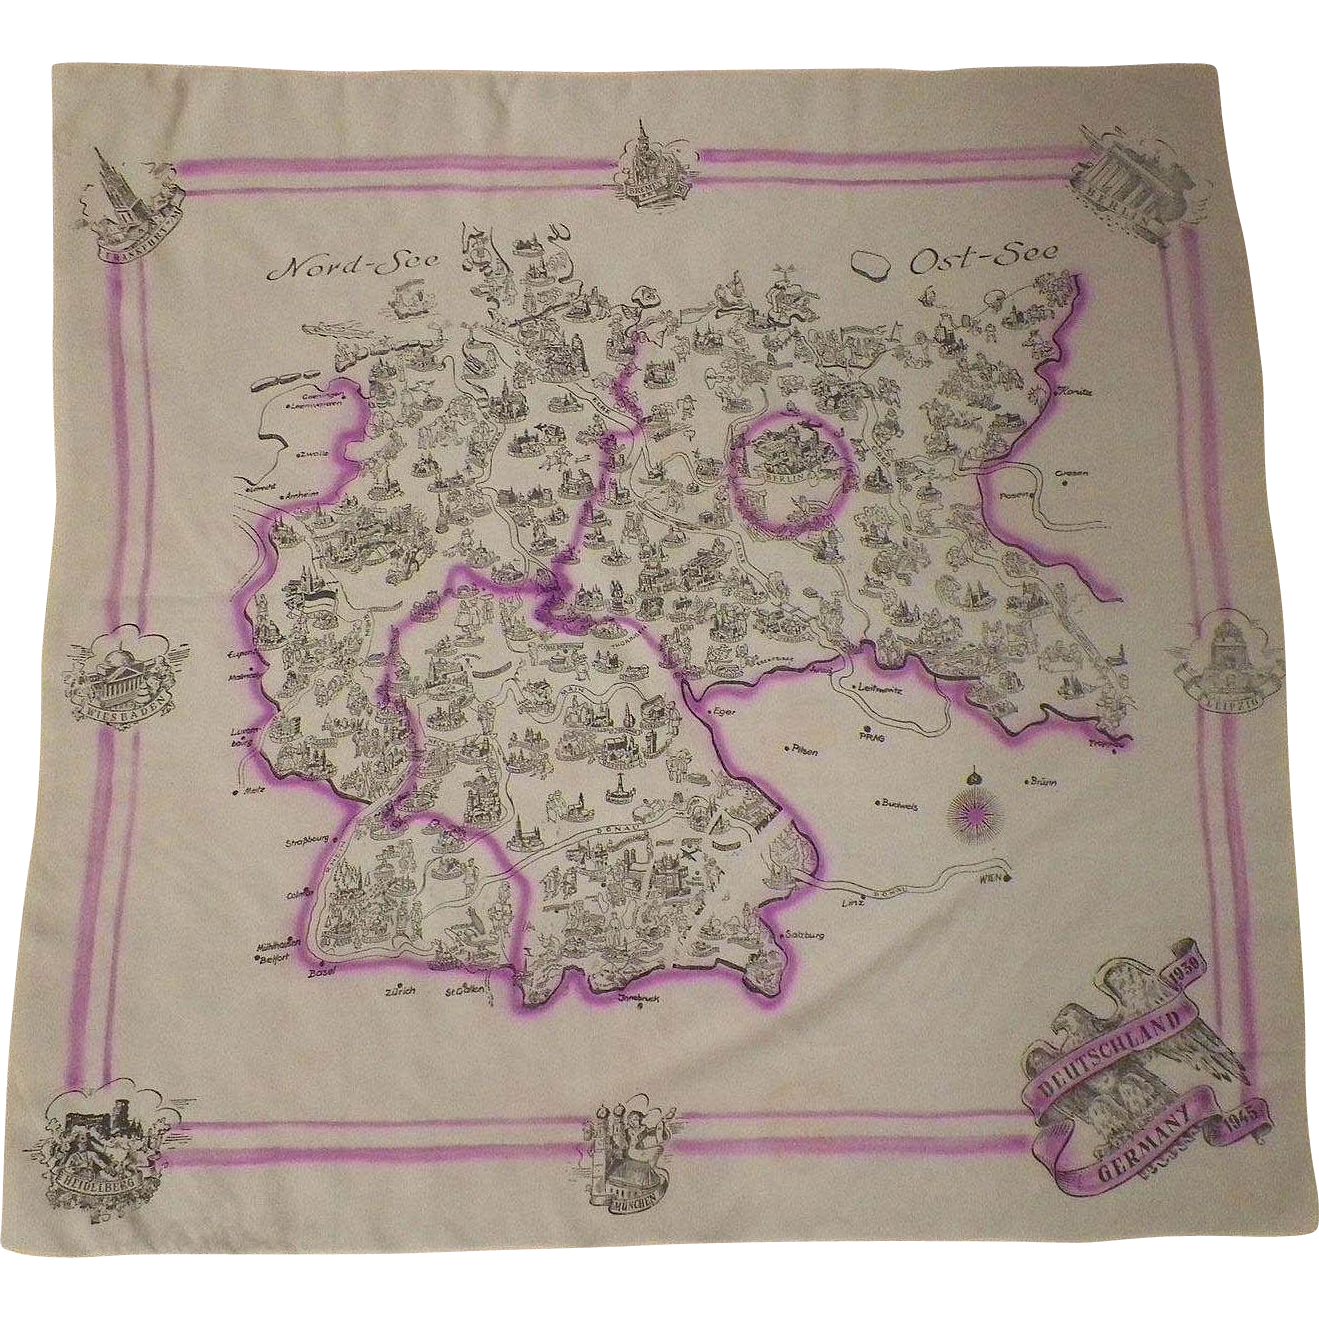 Vintage World War II Germany Silk Scarf 1939-1945